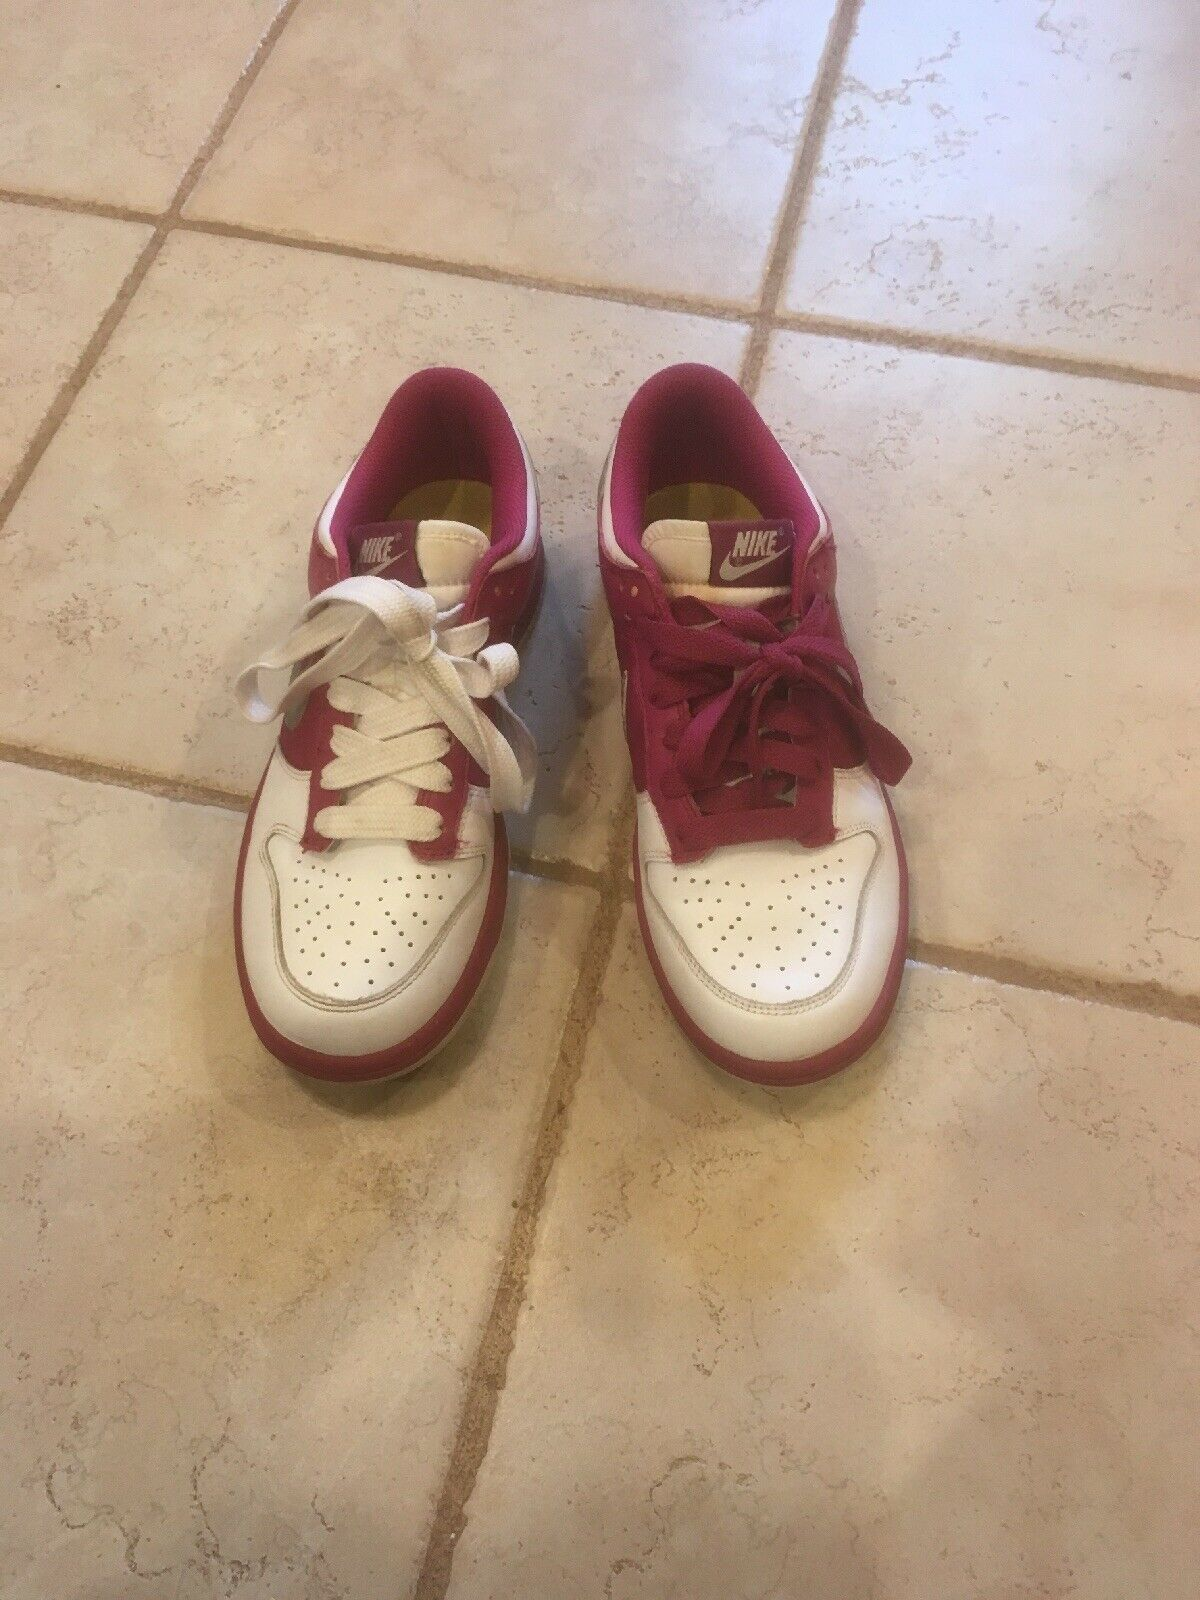 NIKE WOMEN SNEAKERS SWOOSH HOT PINK AND WHITE SIZE 8 SMELL GOOD